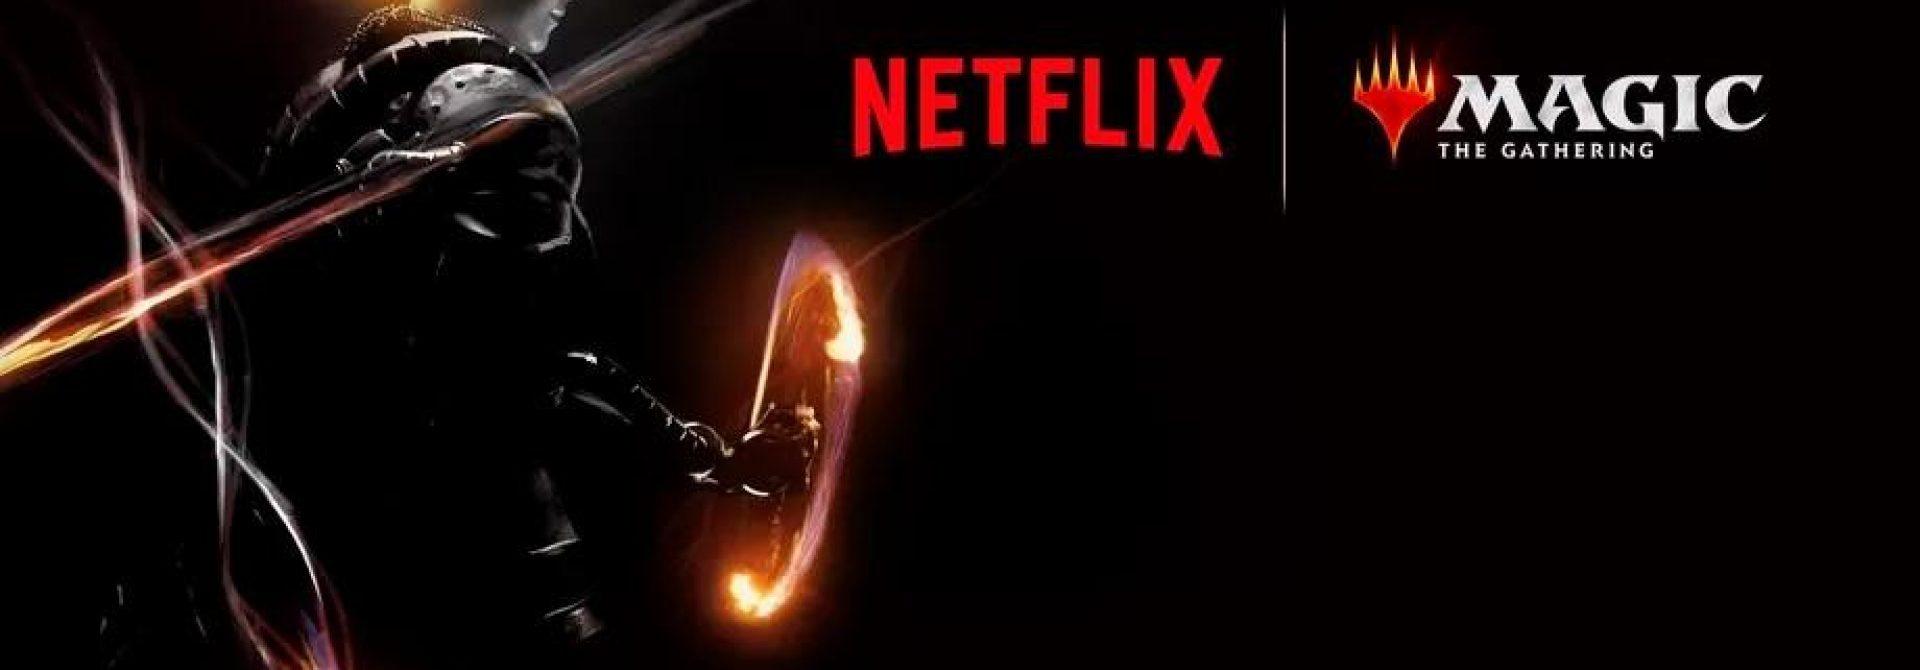 Magic The Gathering TV Series Announced For Netflix